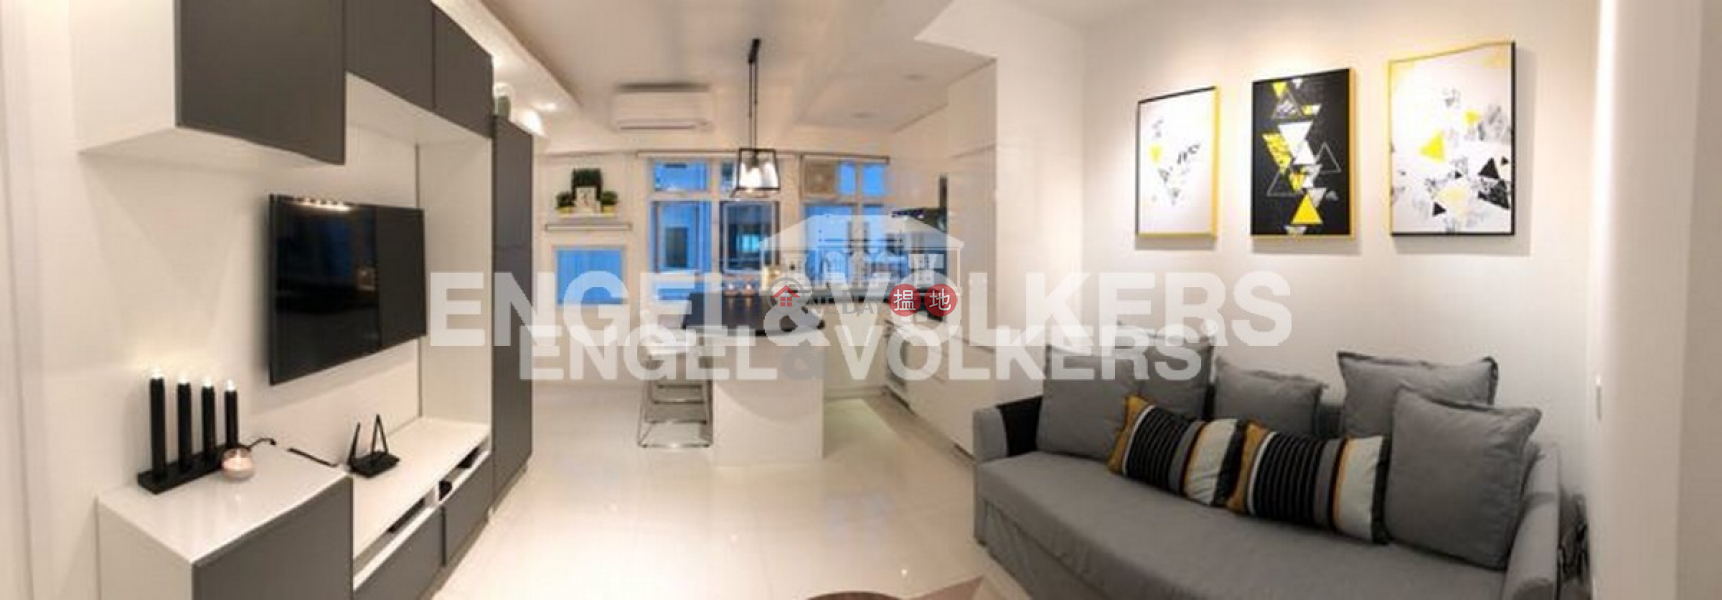 2 Bedroom Flat for Rent in Mid Levels West | 3 Chico Terrace 芝古臺3號 Rental Listings